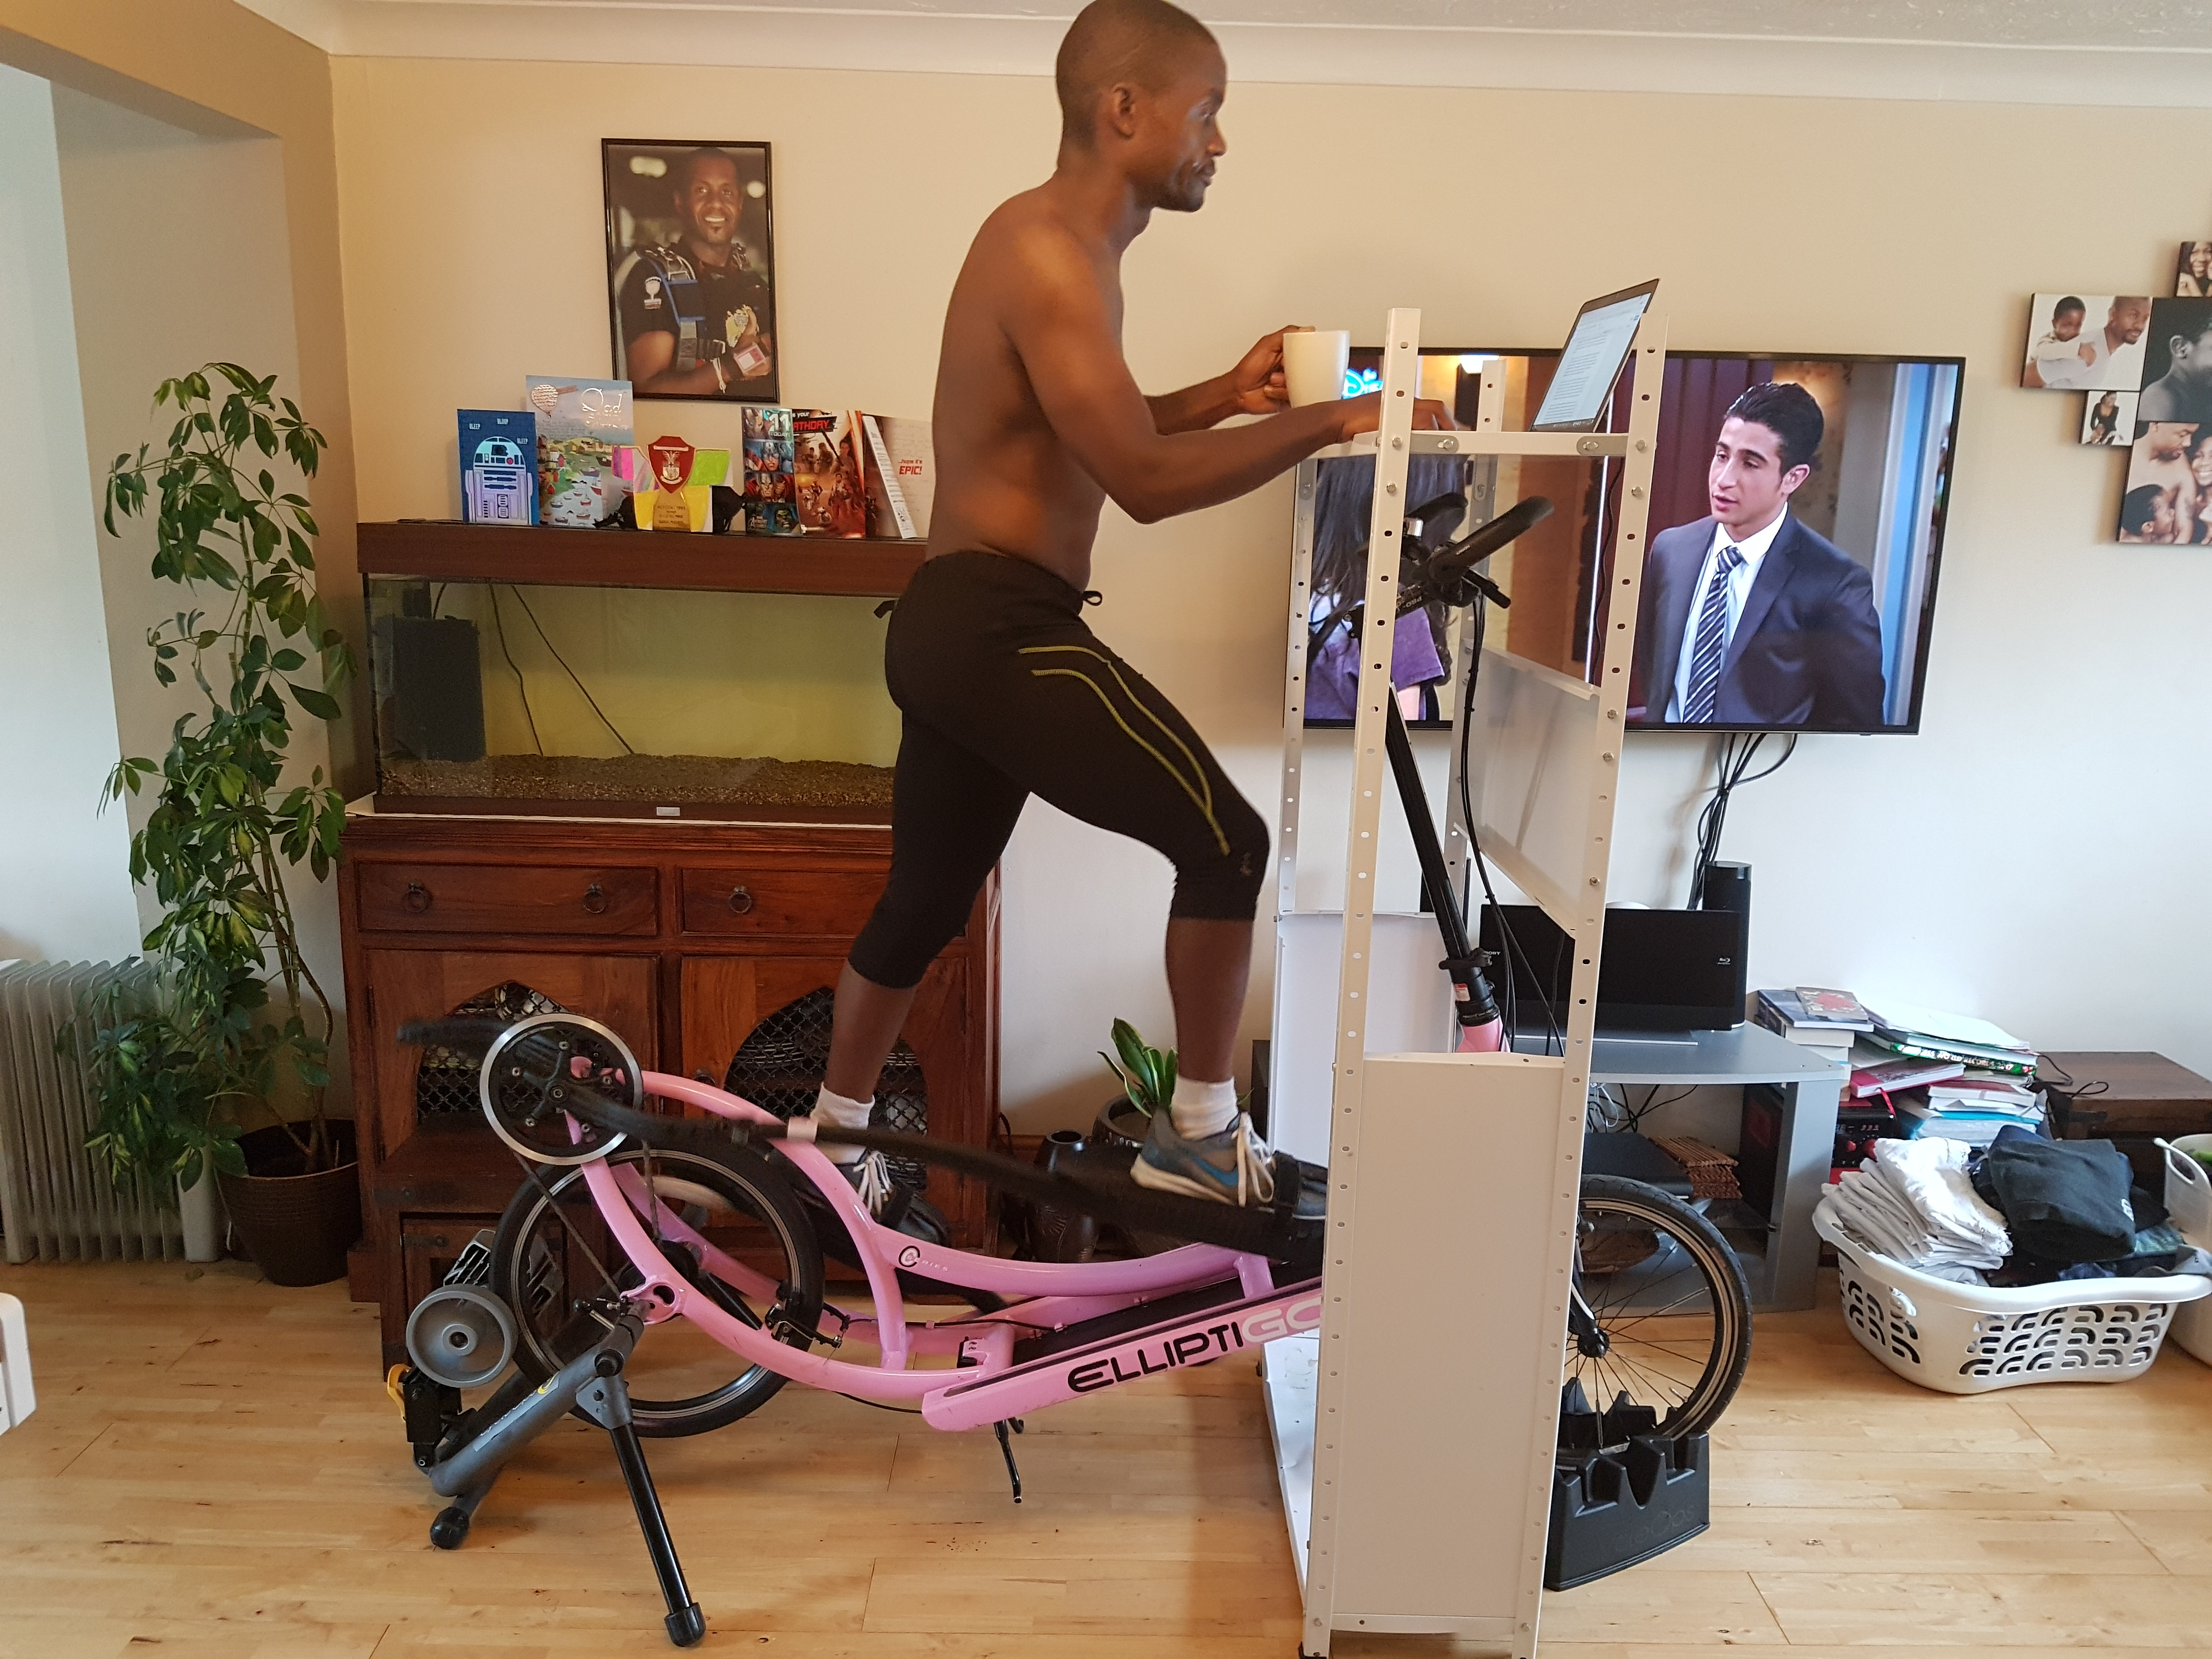 Keeping things interesting on the indoor trainer...